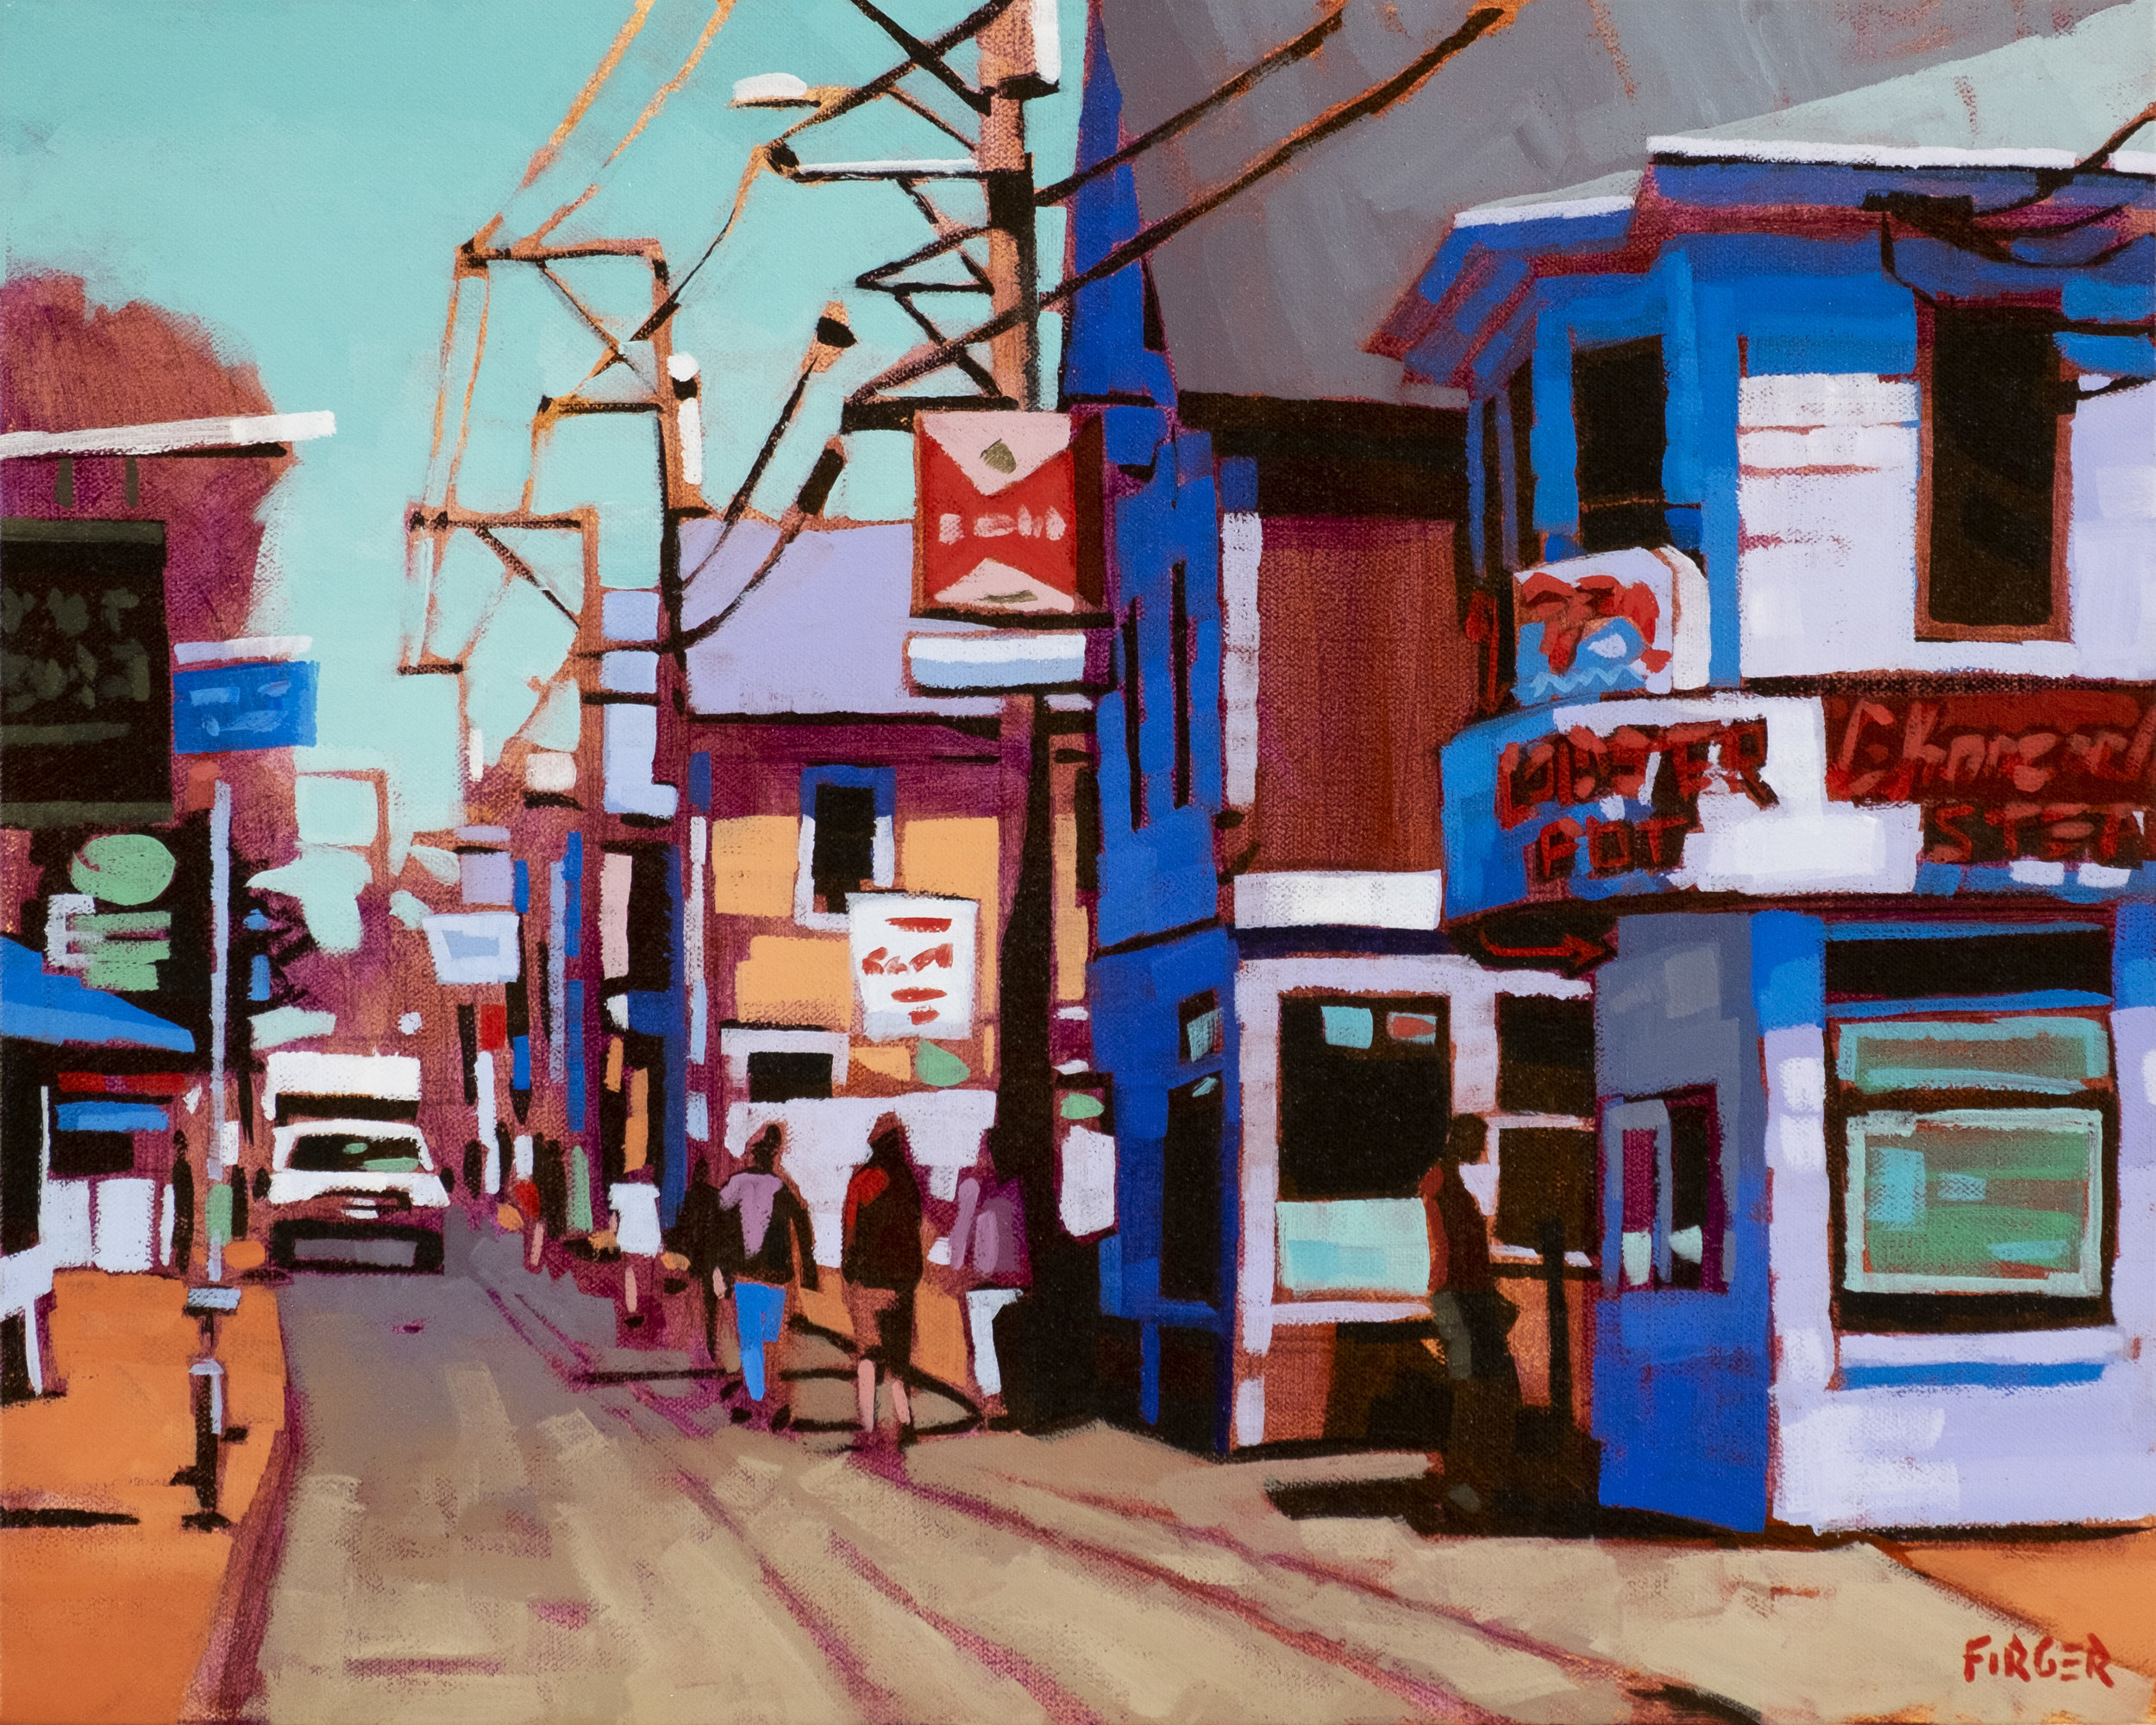 Commercial Street Colors - 16 x 20, Acrylic on Canvas